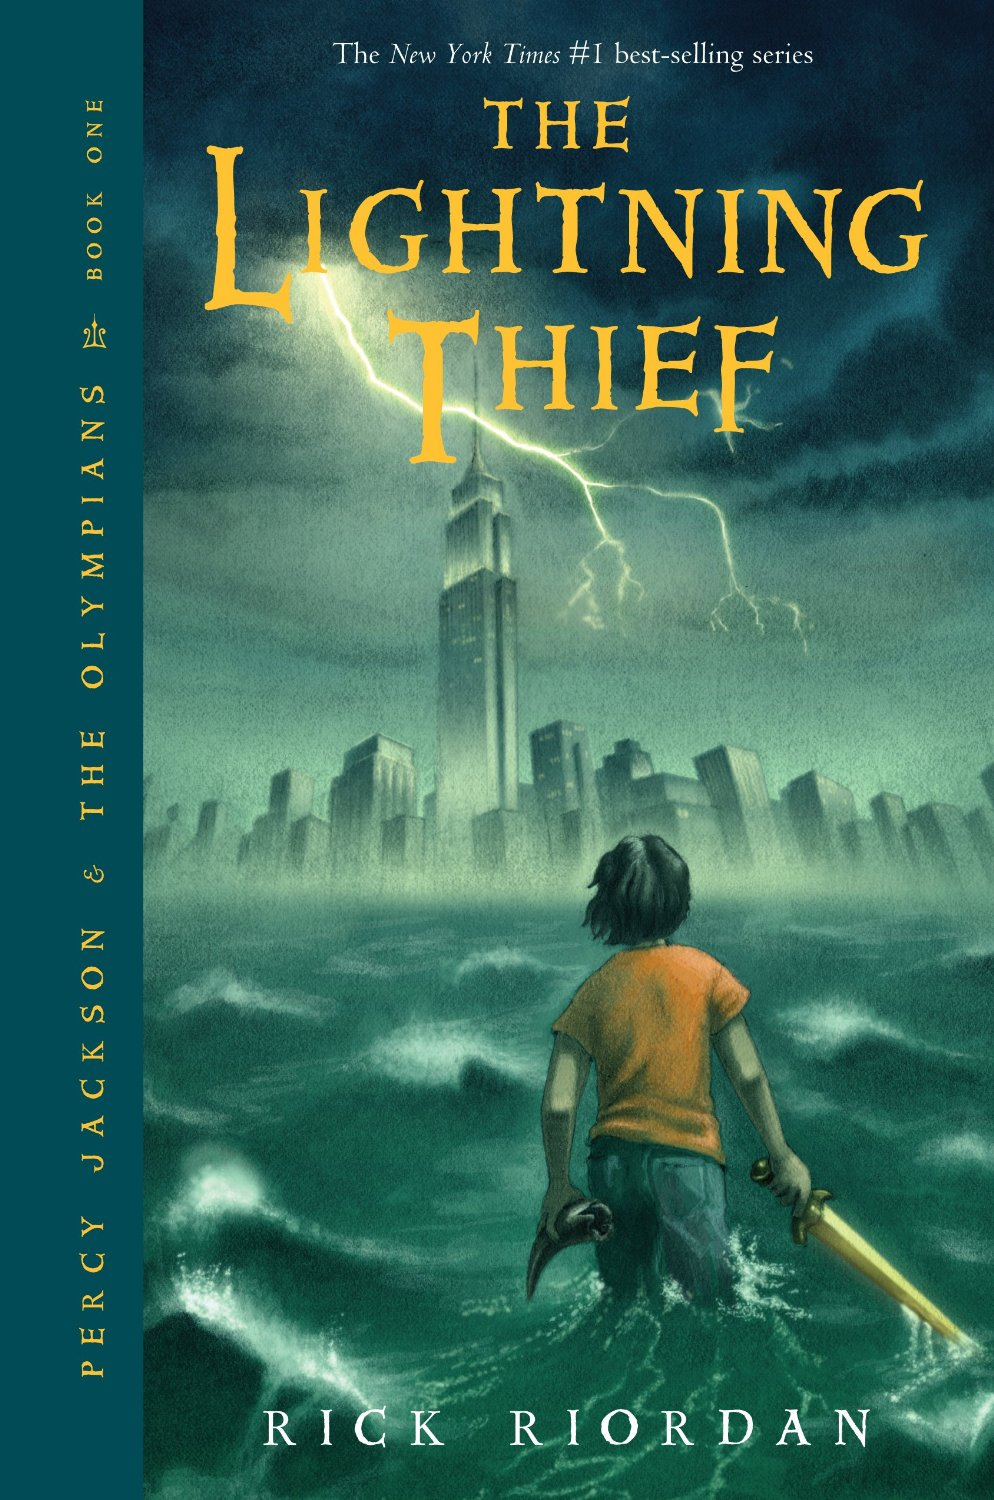 https://mybookwormblog.files.wordpress.com/2014/02/lightning-thief1.jpg